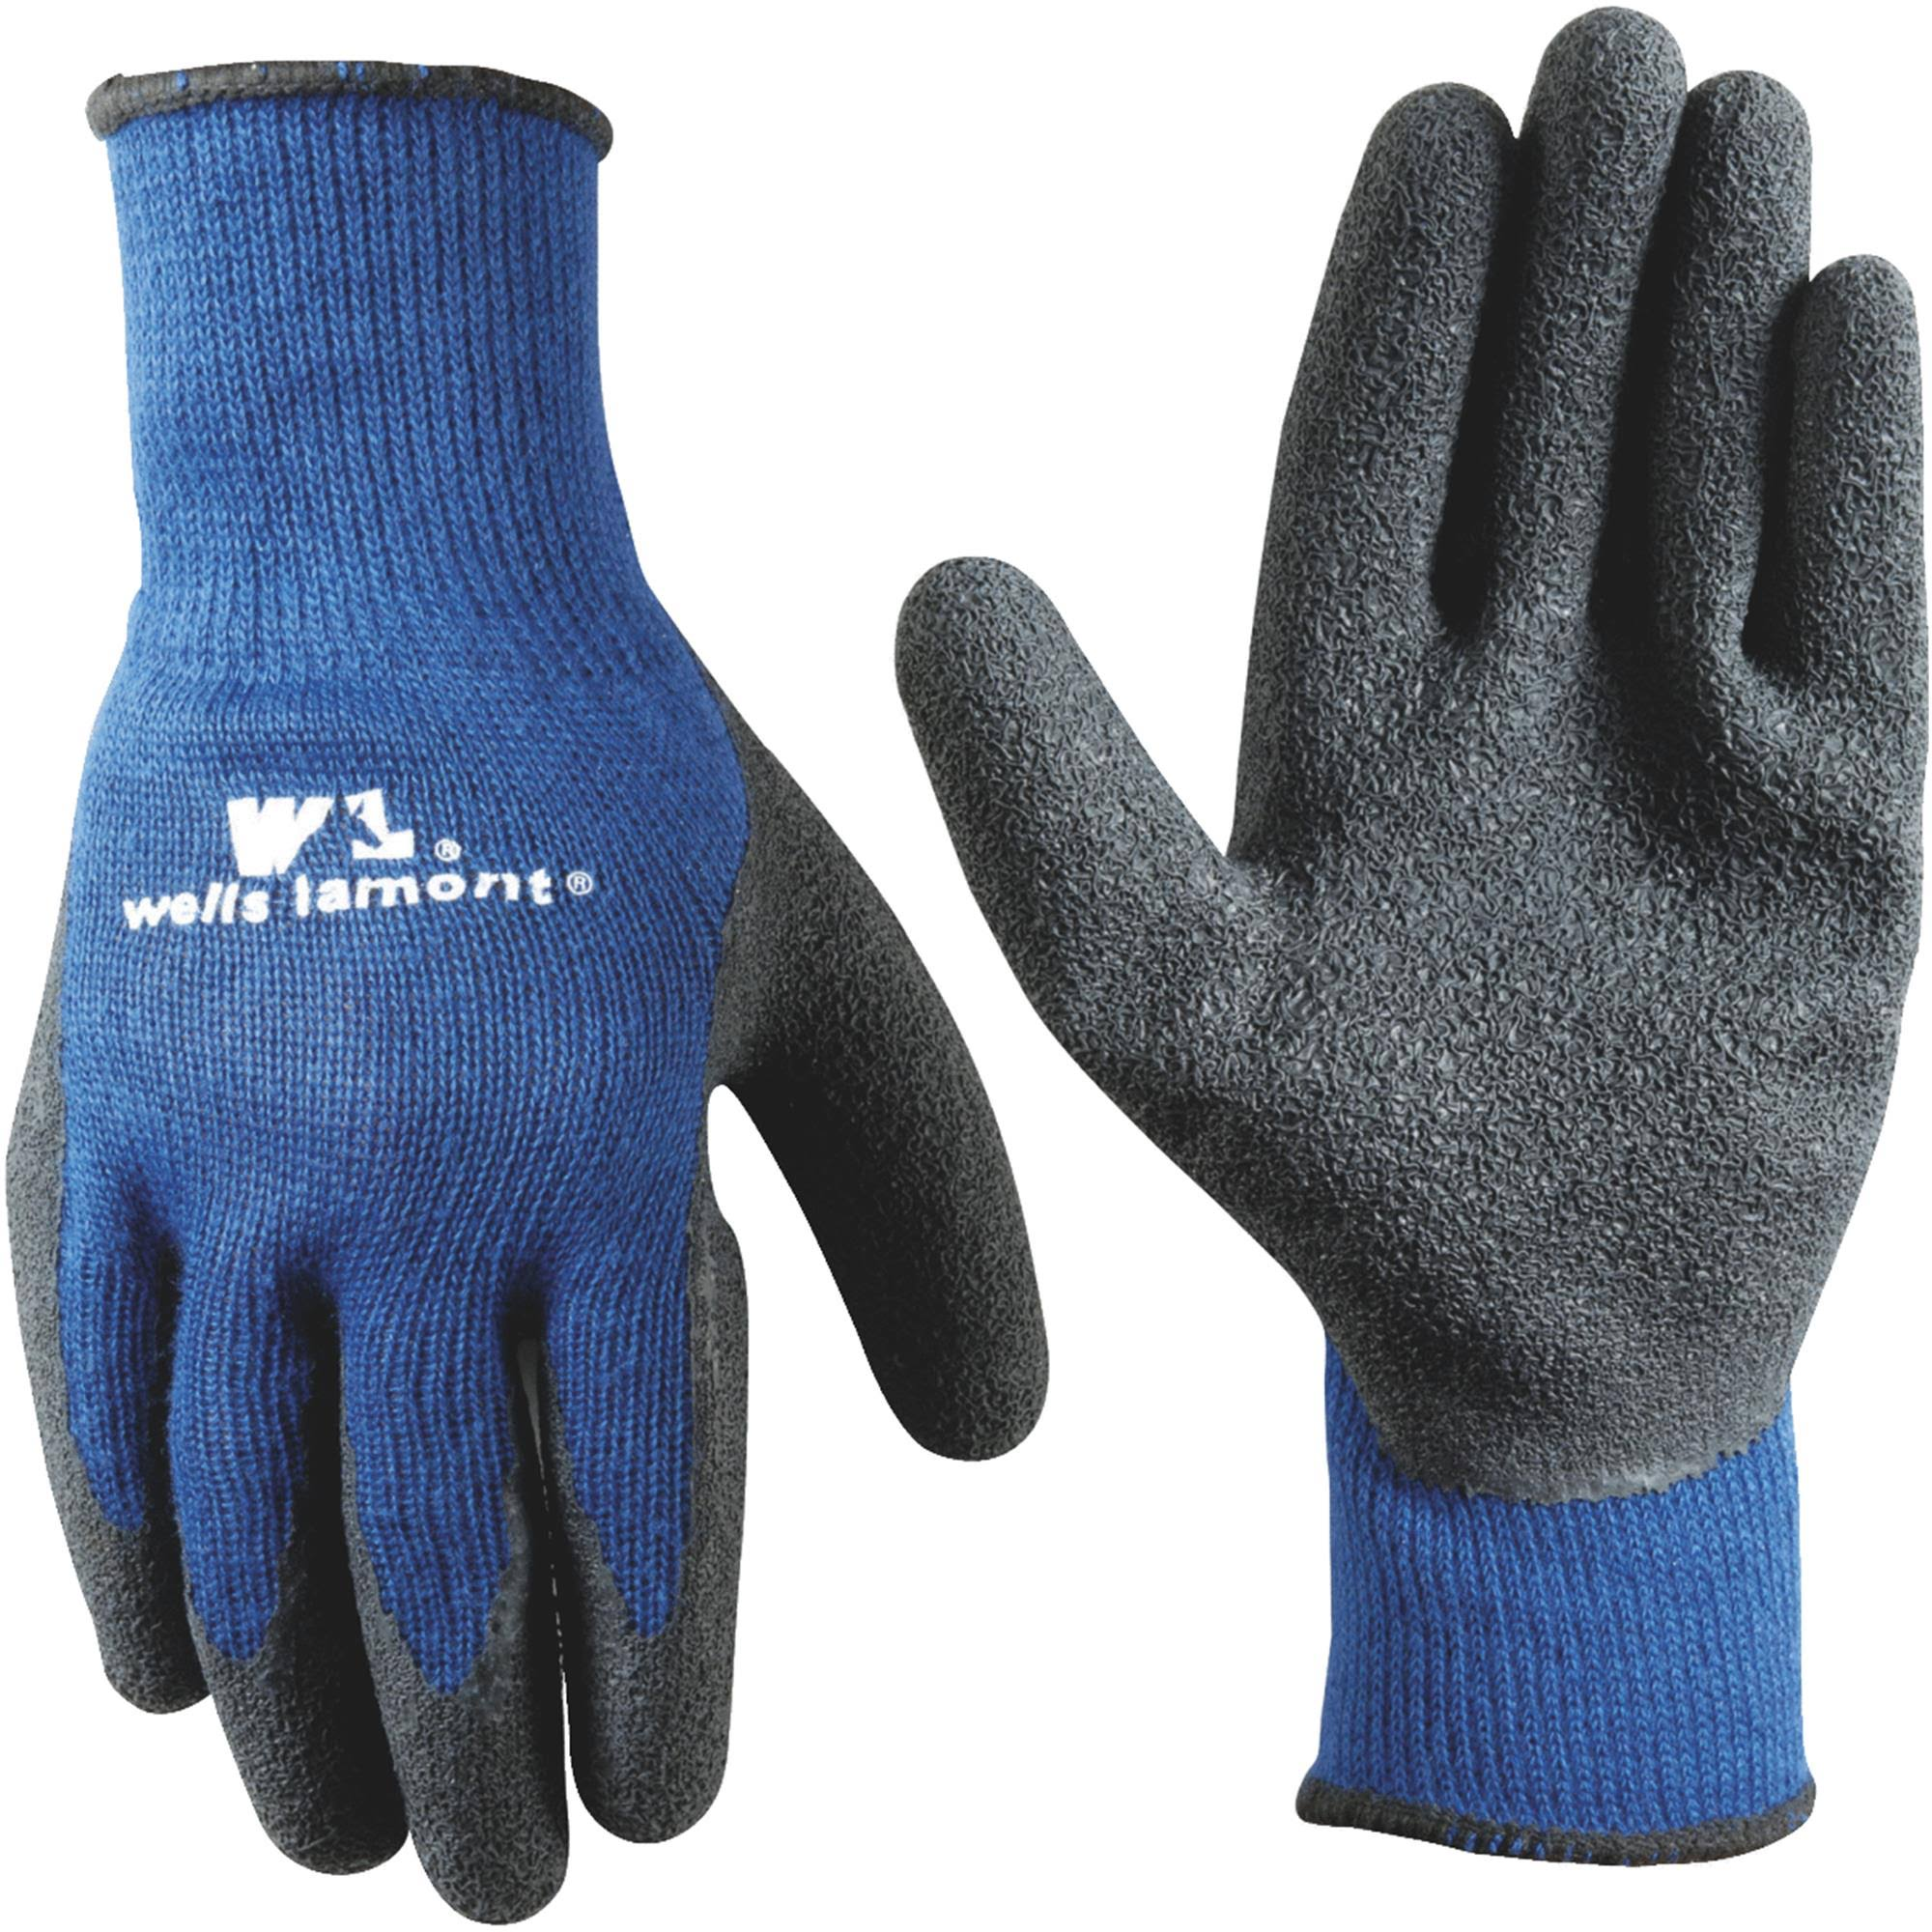 Wells Lamont Premium Latex Coated Work Gloves - Large